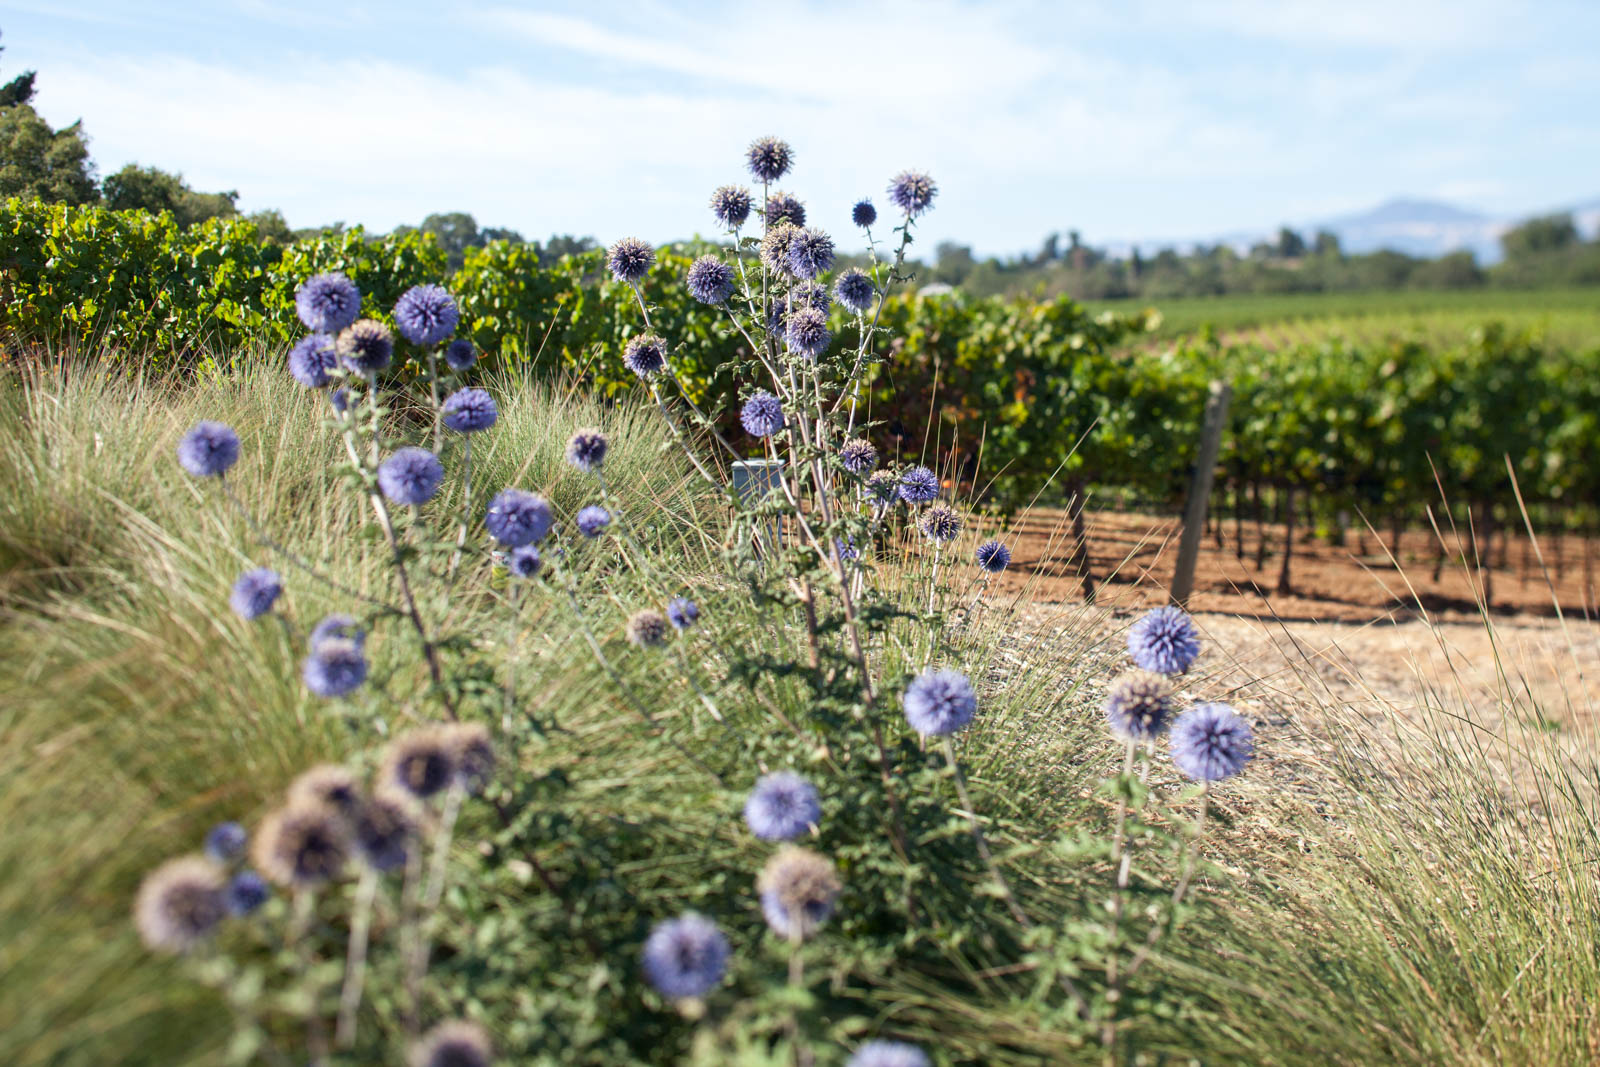 Scottish thistle are the emblem of MacRostie Winery and Vineyards — a tip of the cap to Steve MacRostie's heritage. ©Kevin Day/Opening a Bottle